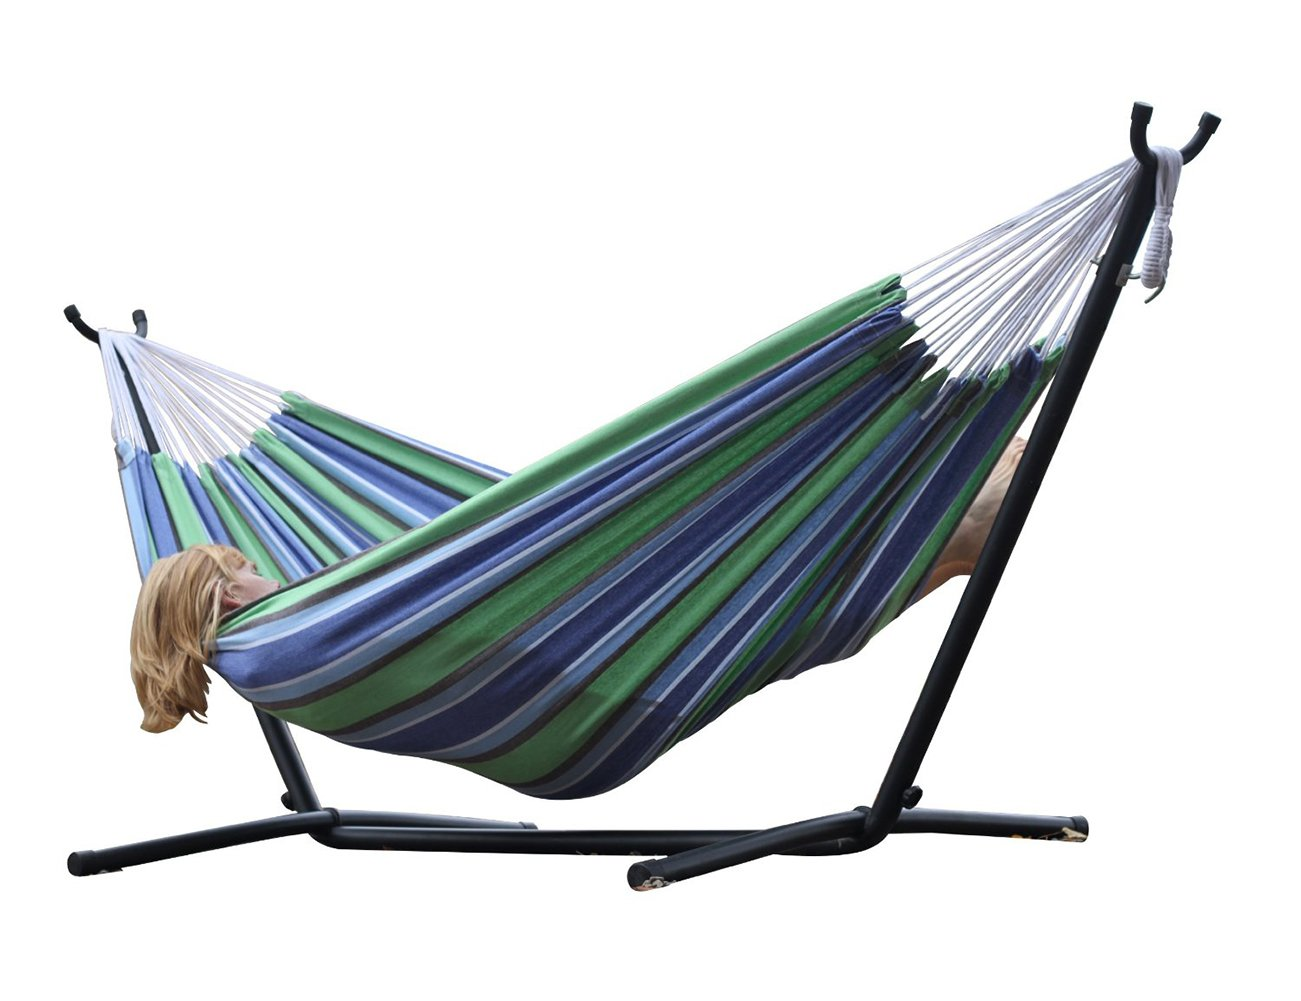 2PO Brazilian Style Double 100 Cotton Hammock with 9 Feet Space-Saving Steel Stand and Bonus Free Carrying Case